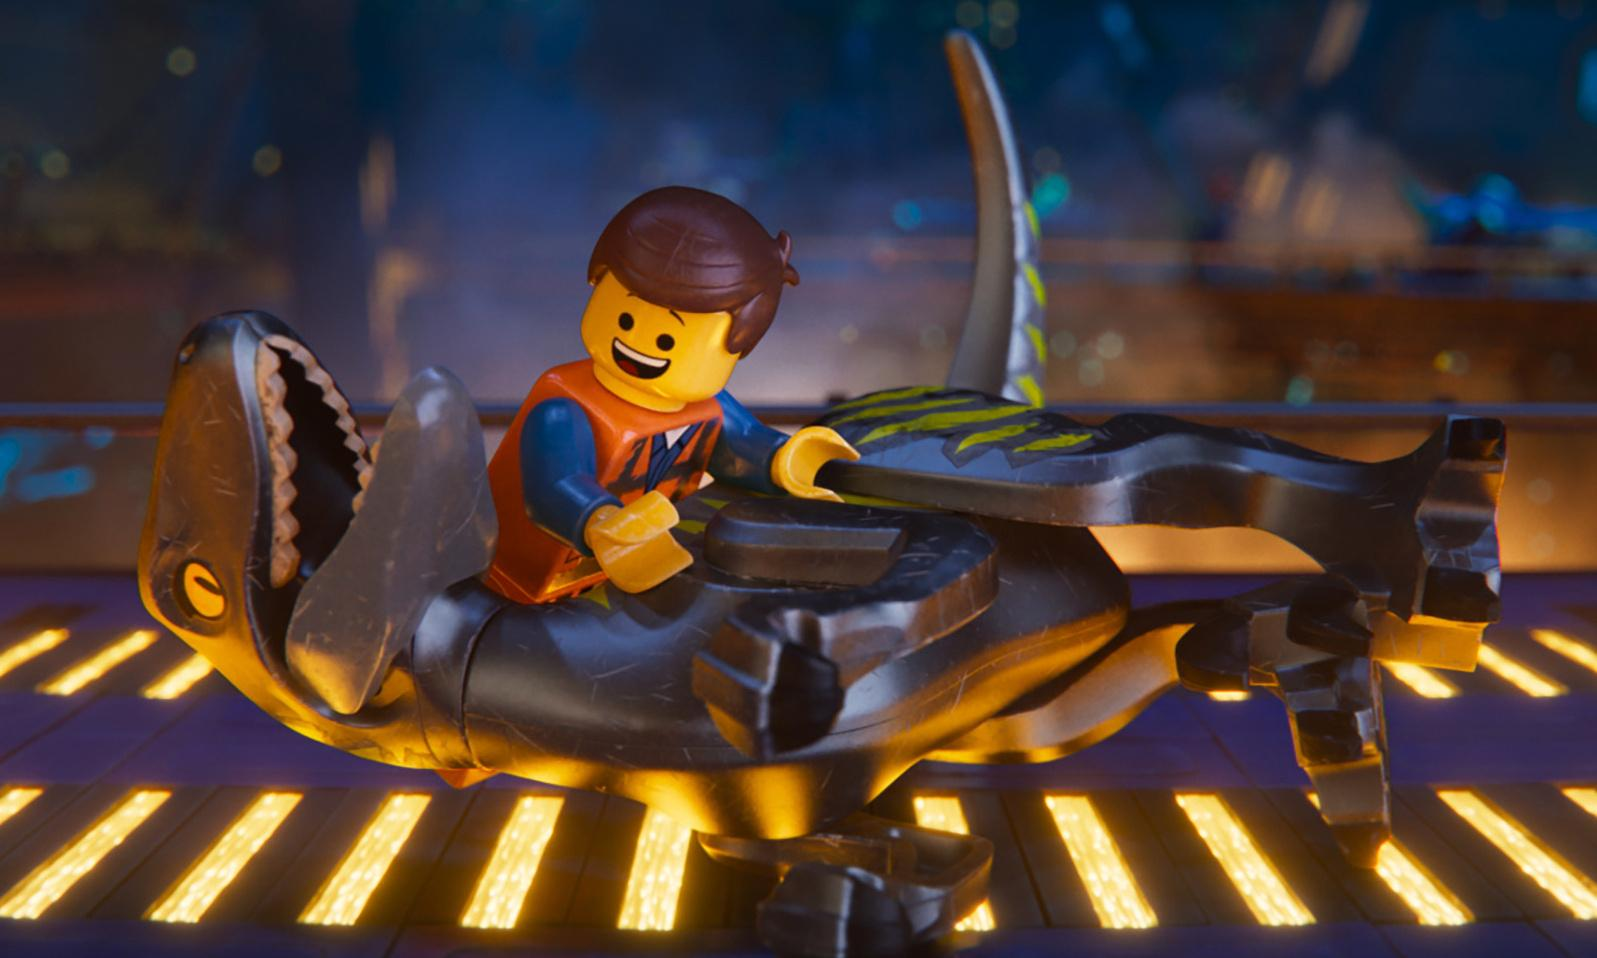 The Lego Movie 2: The Second Part review – even more awesome